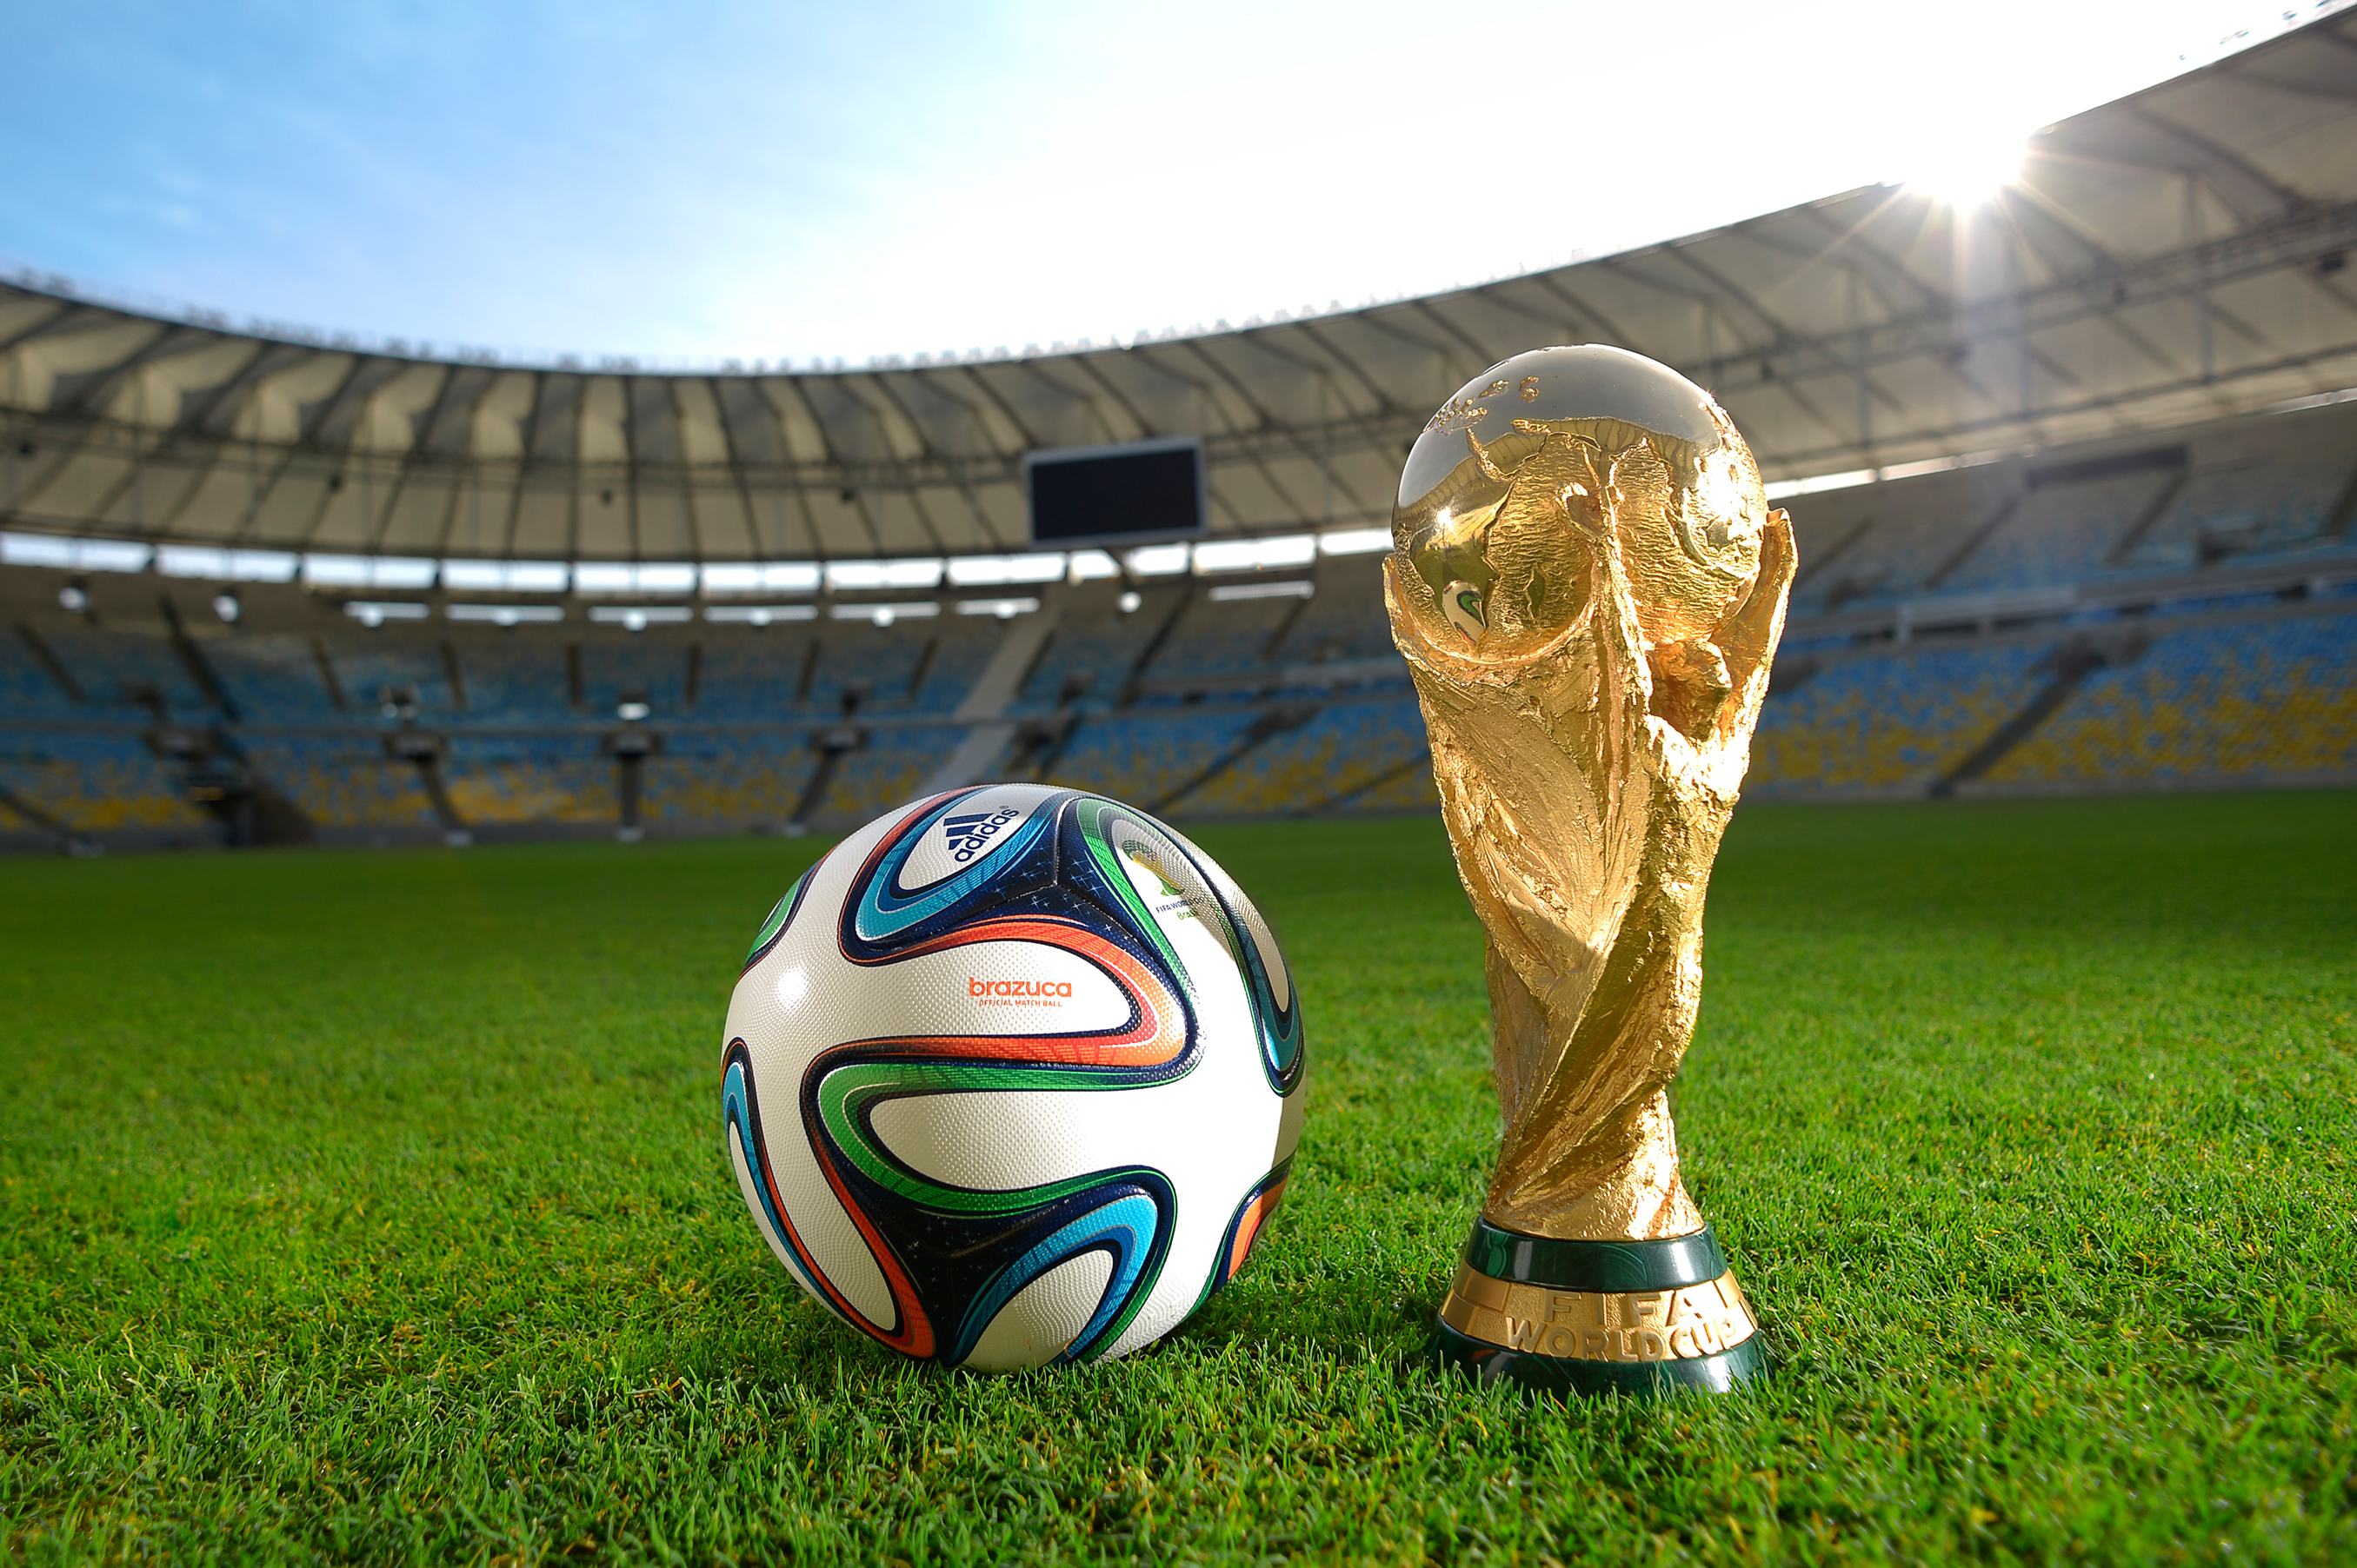 World Cup favorites - Germans and Brazilians